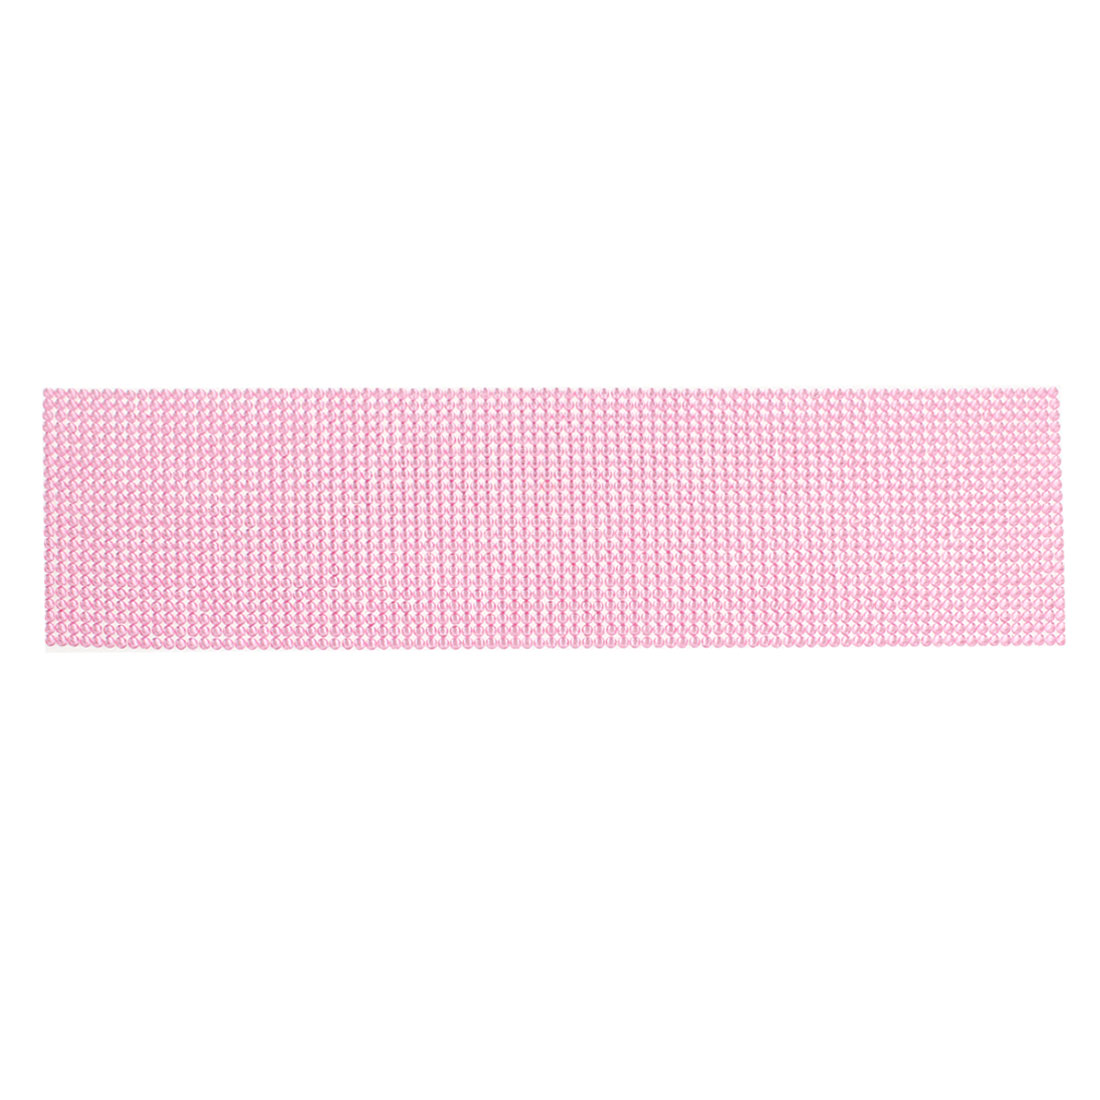 Auto Pink 4mm Dia Sparkling Rhinestones Detail DIY Stickers Decal 36cm Length